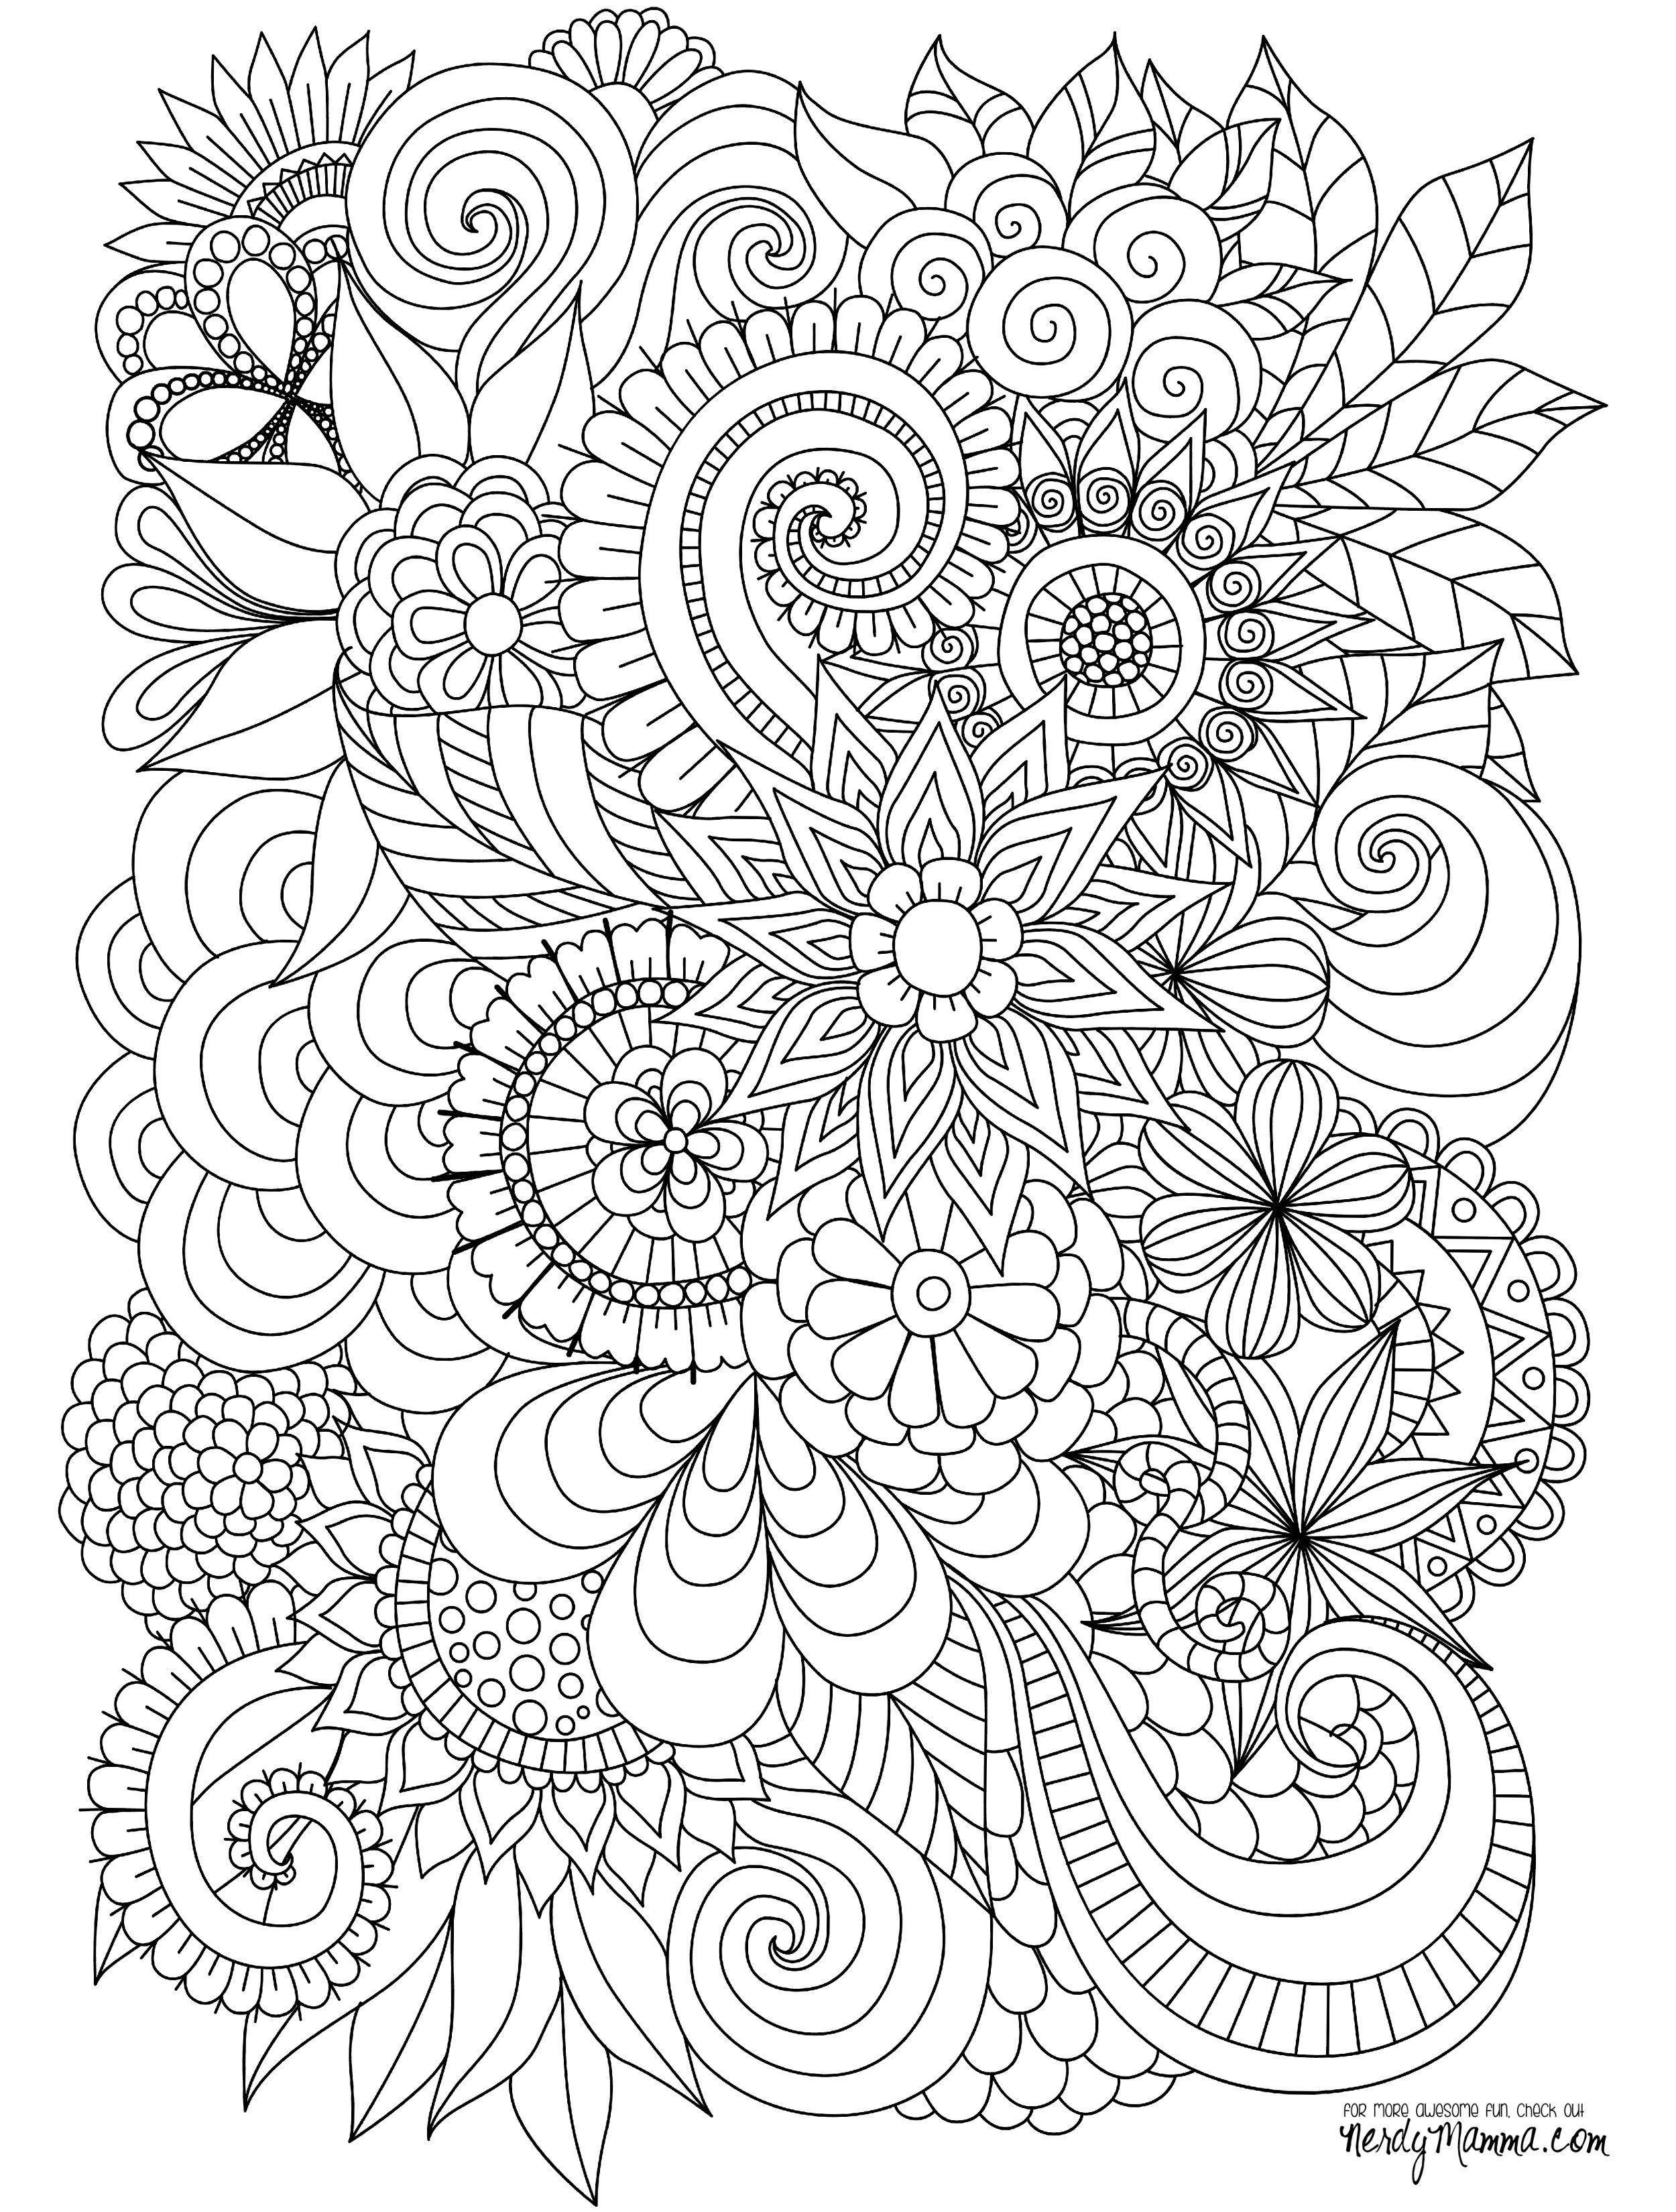 25 Coloring Pages For Markers Coloring Pages Adult Coloring